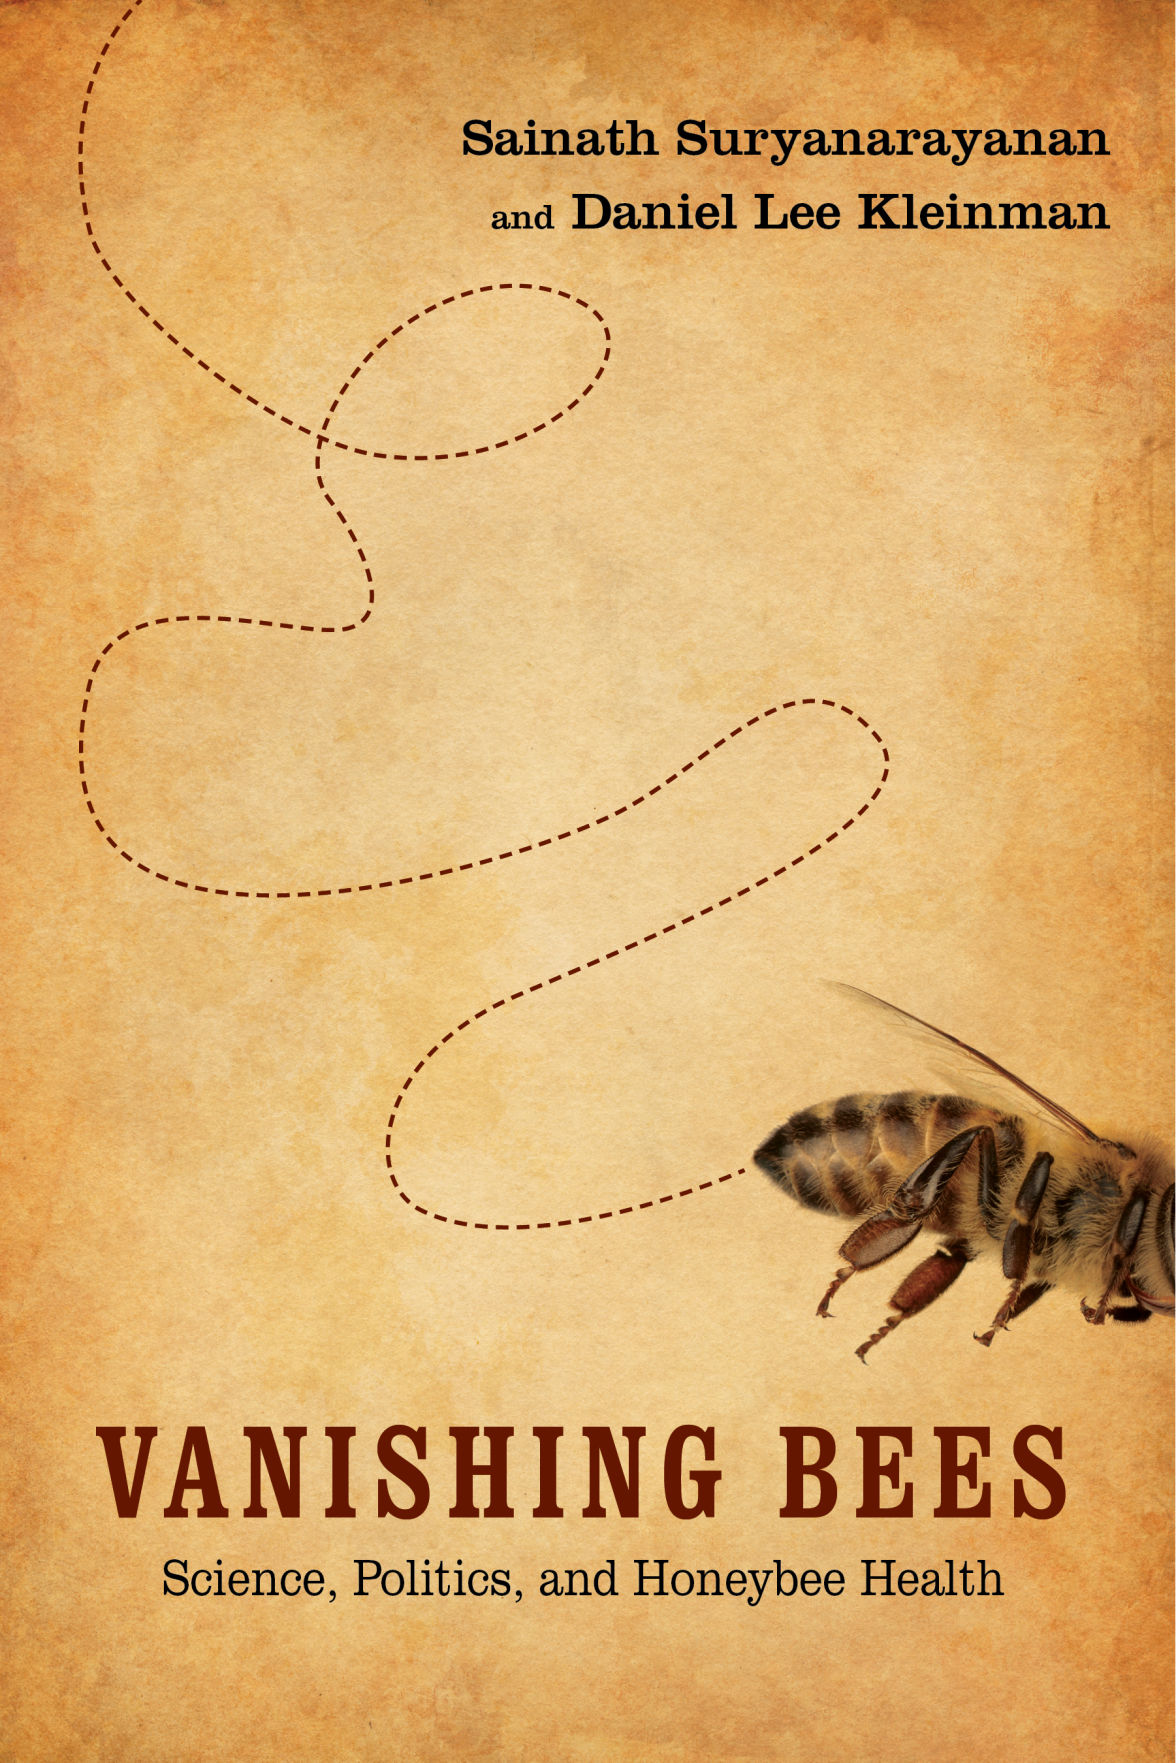 'Vanishing Bees' important for all levels of beekeepers